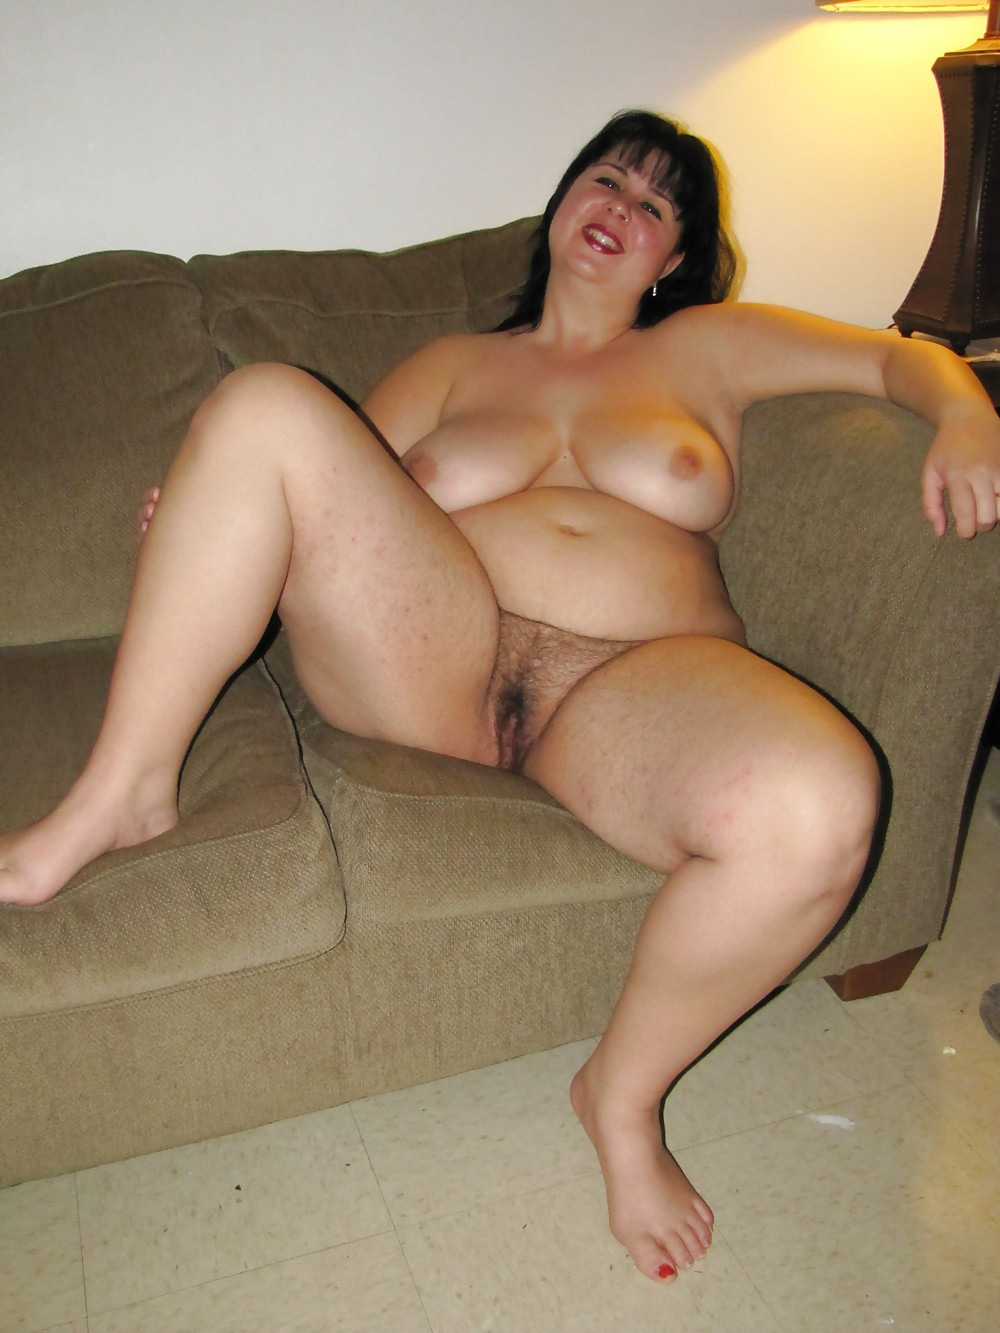 Free ordinary mature pussy galleries